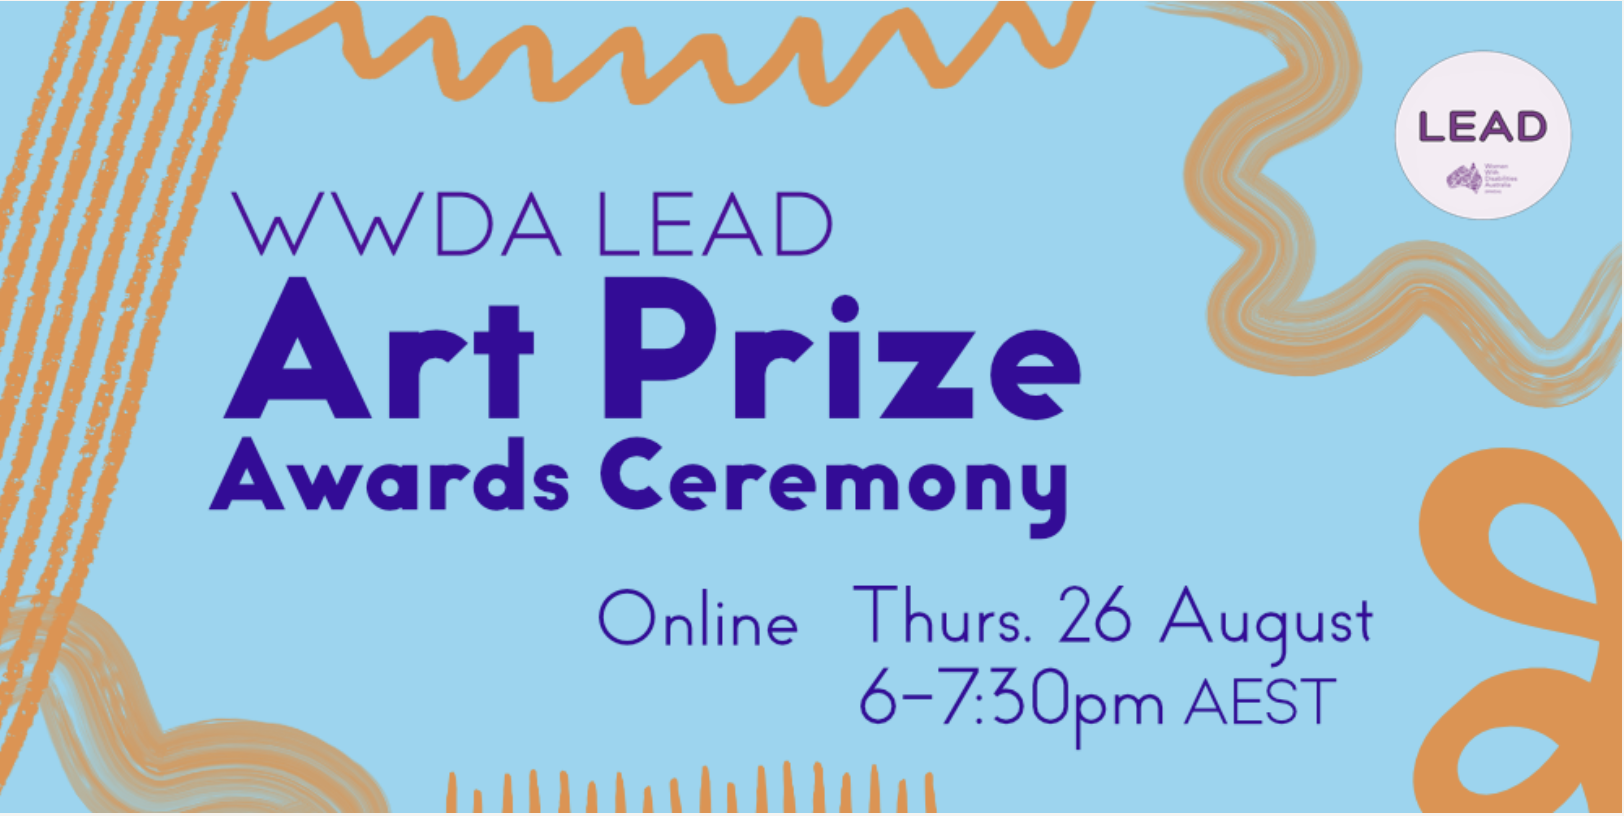 Light blue background with purple scribbles around the outside of dark blue text which reads WWDA LEAD Art Prize Awards Ceremony. Online Thurs 26 August 6-7:30pm AEST